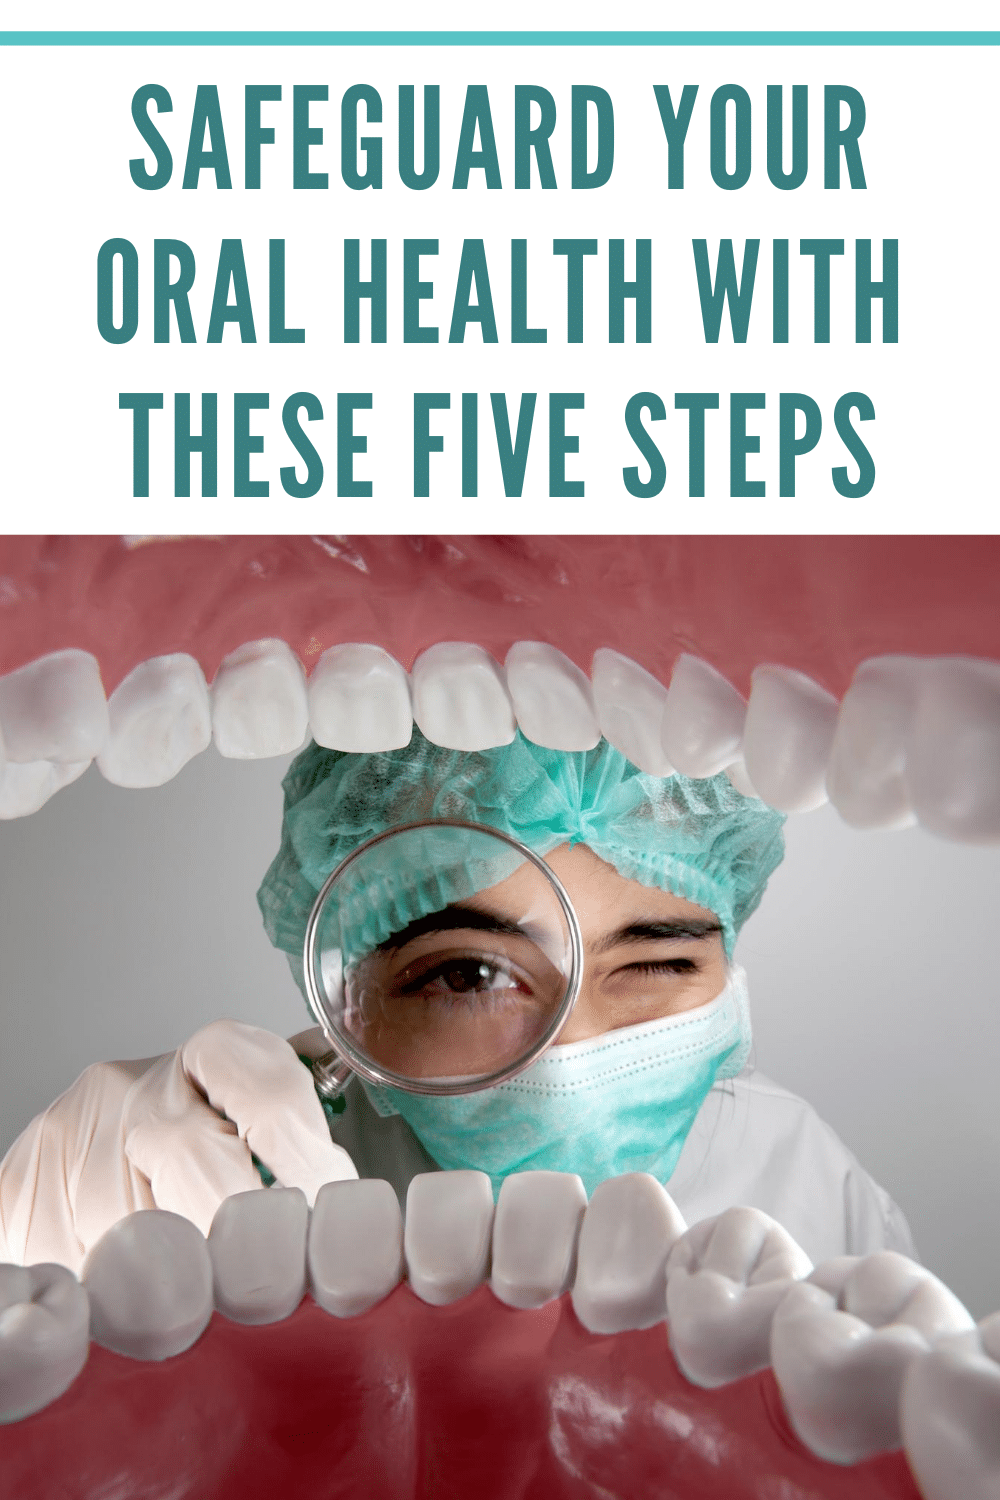 Safeguard Your Oral Health With These Five Steps